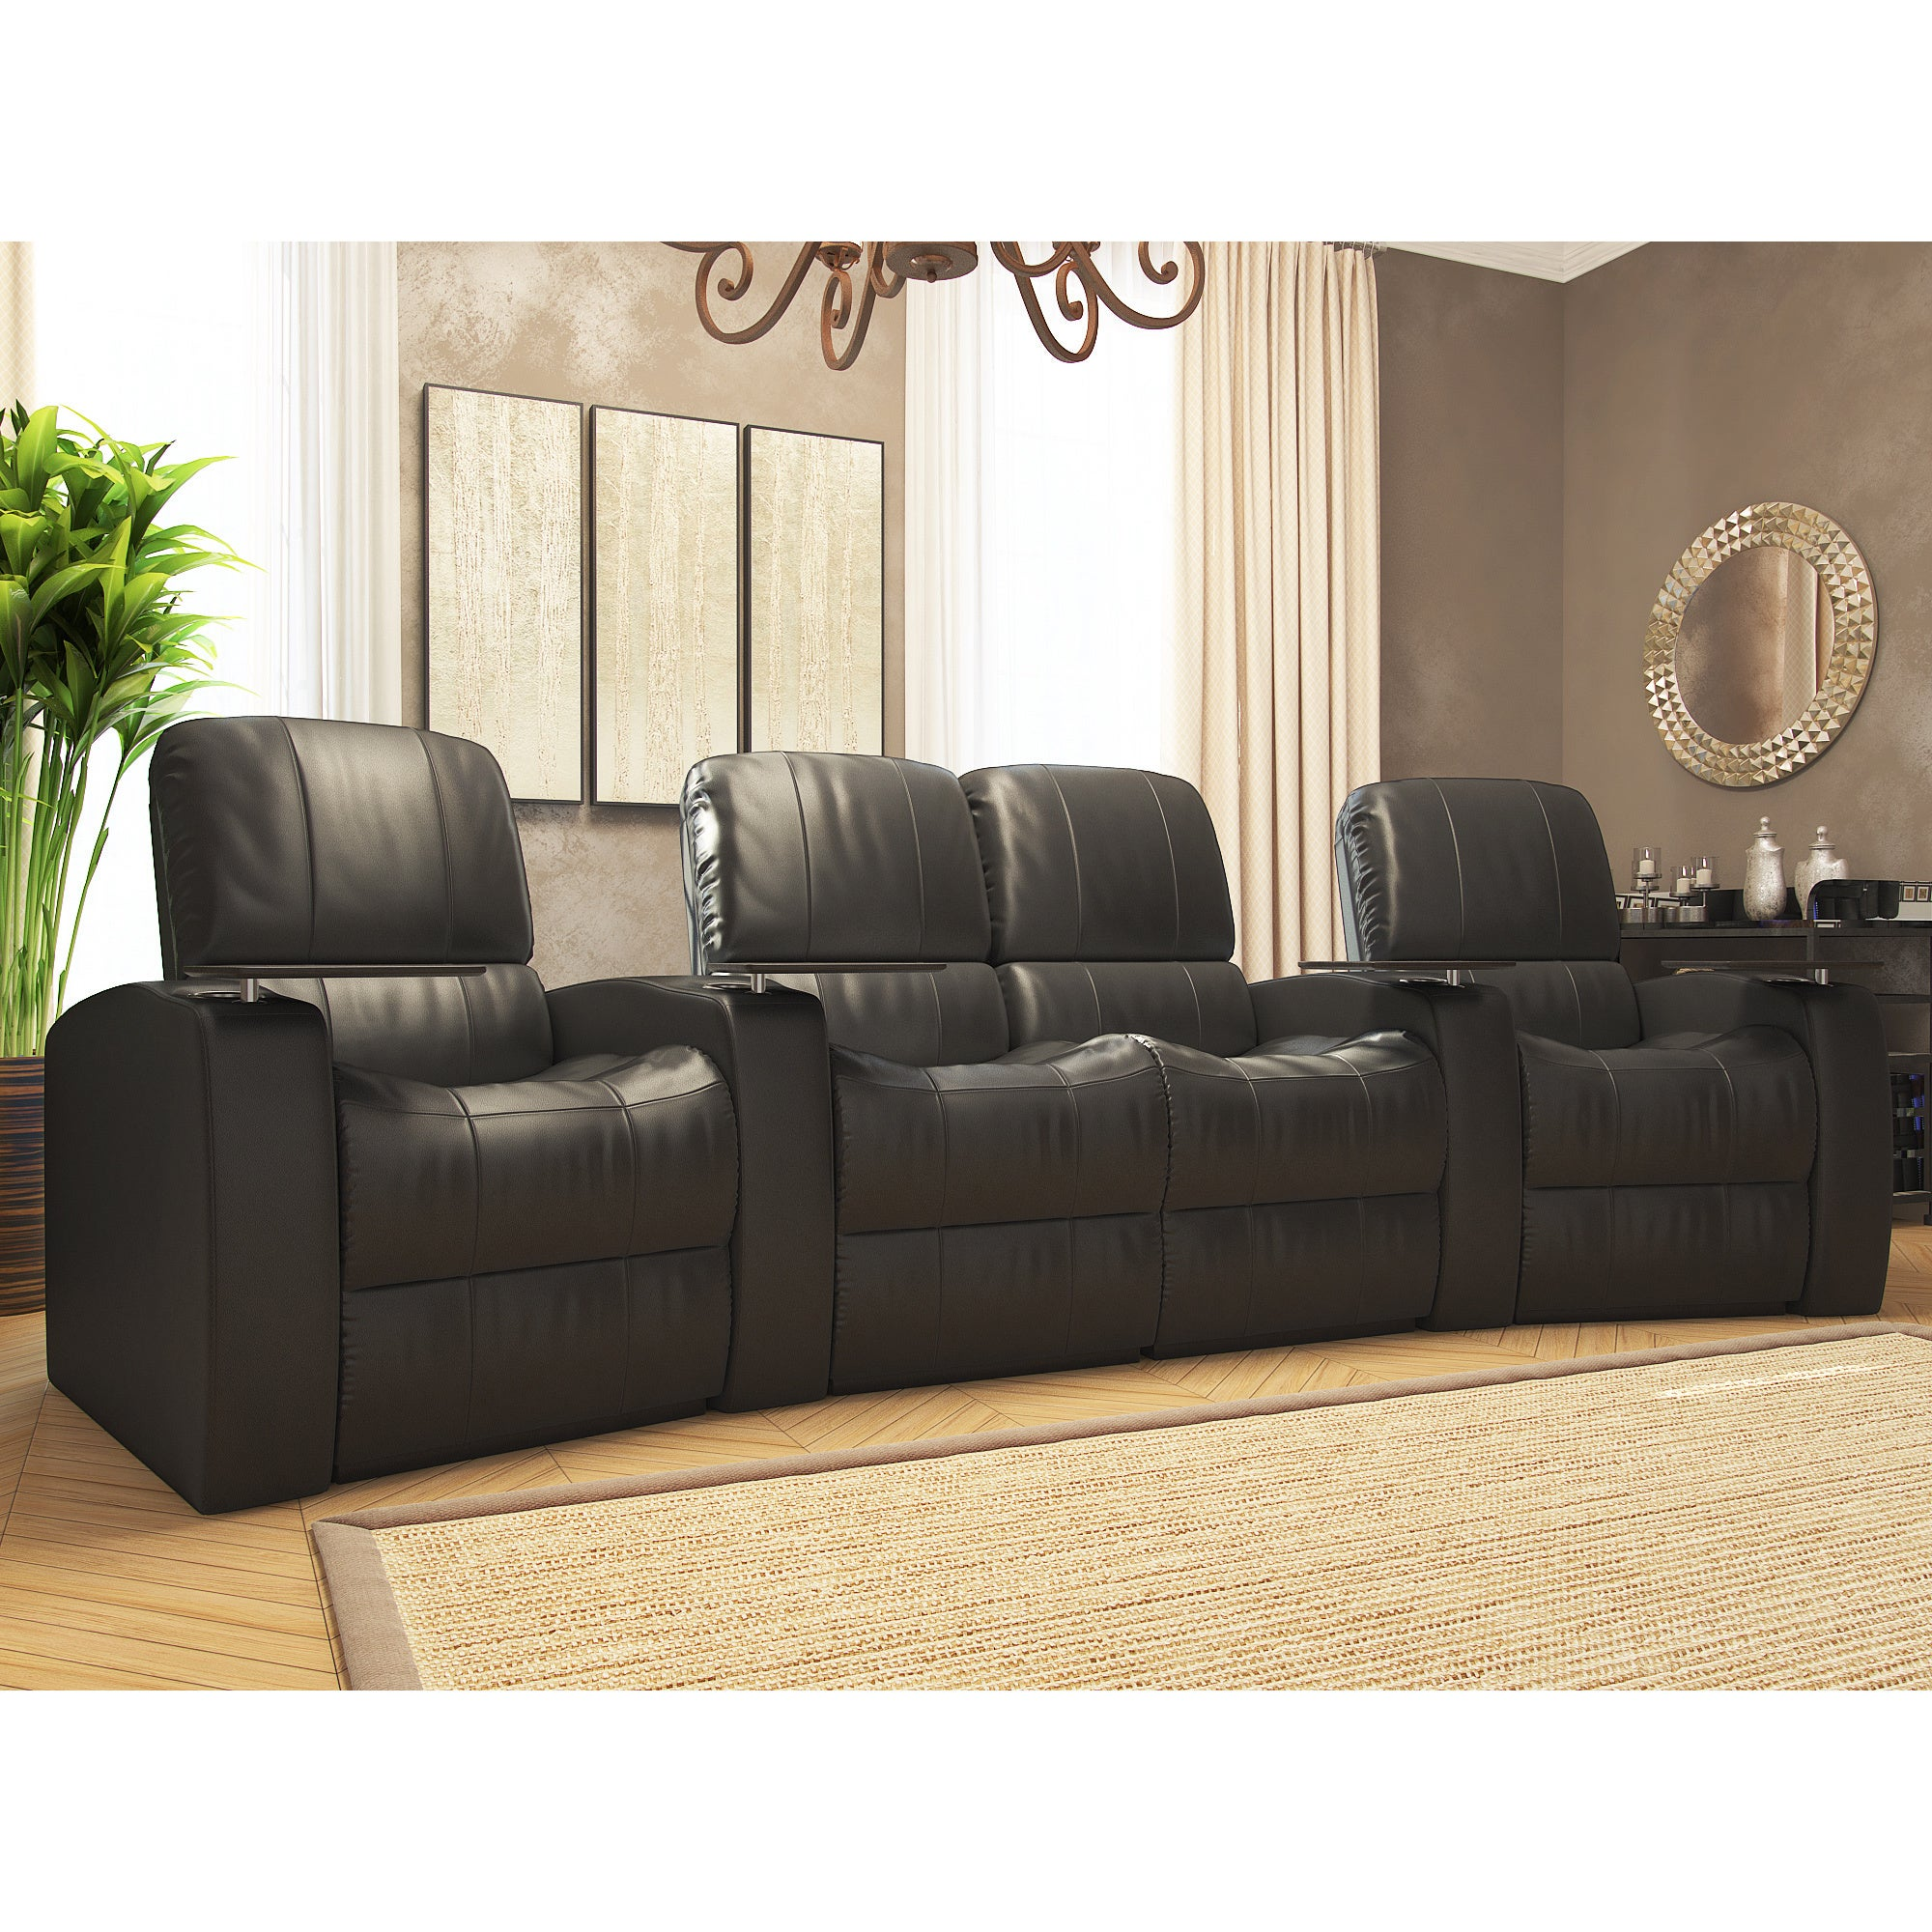 in leather power decadent with look luka loveseat covering this reclining effortlessly theater sophisticated pin luscious genuine